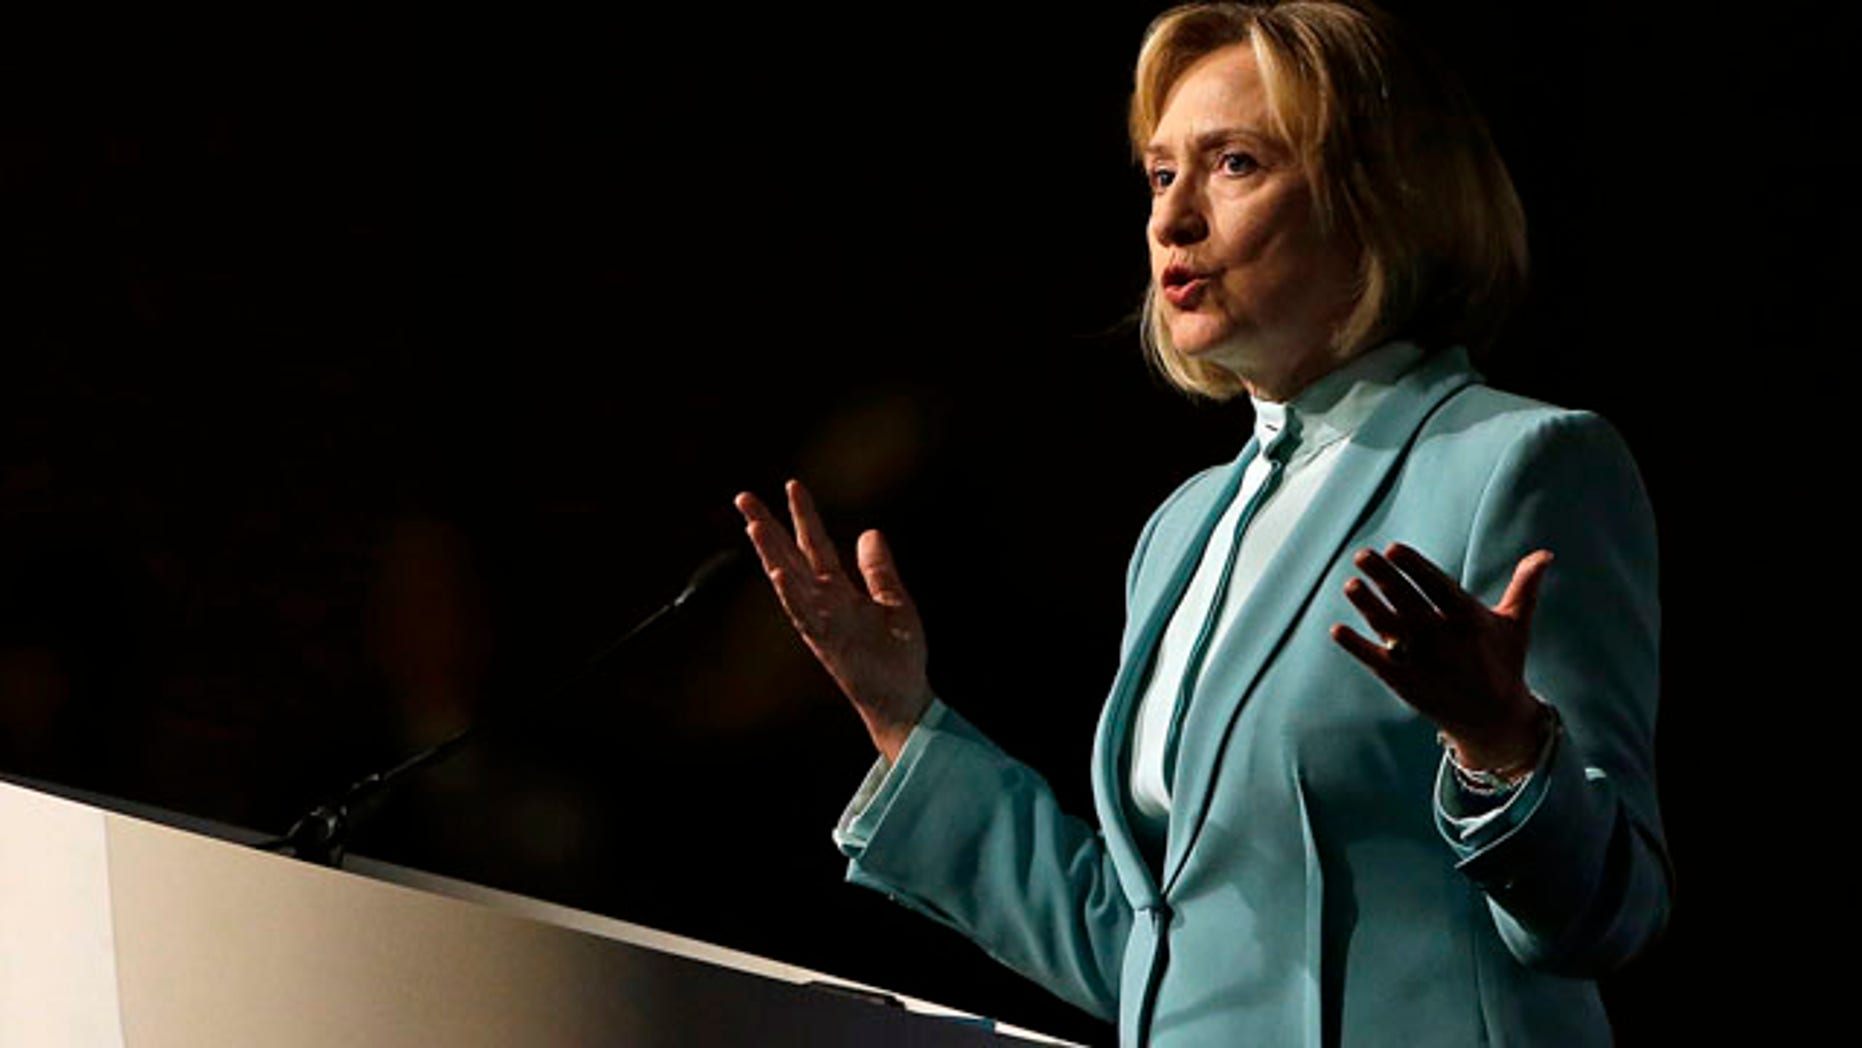 FILE: Aug. 12, 2013: Former Secretary of State Hillary Clinton speaks to the American Bar Association Annual Meeting, in San Francisco, Calif.